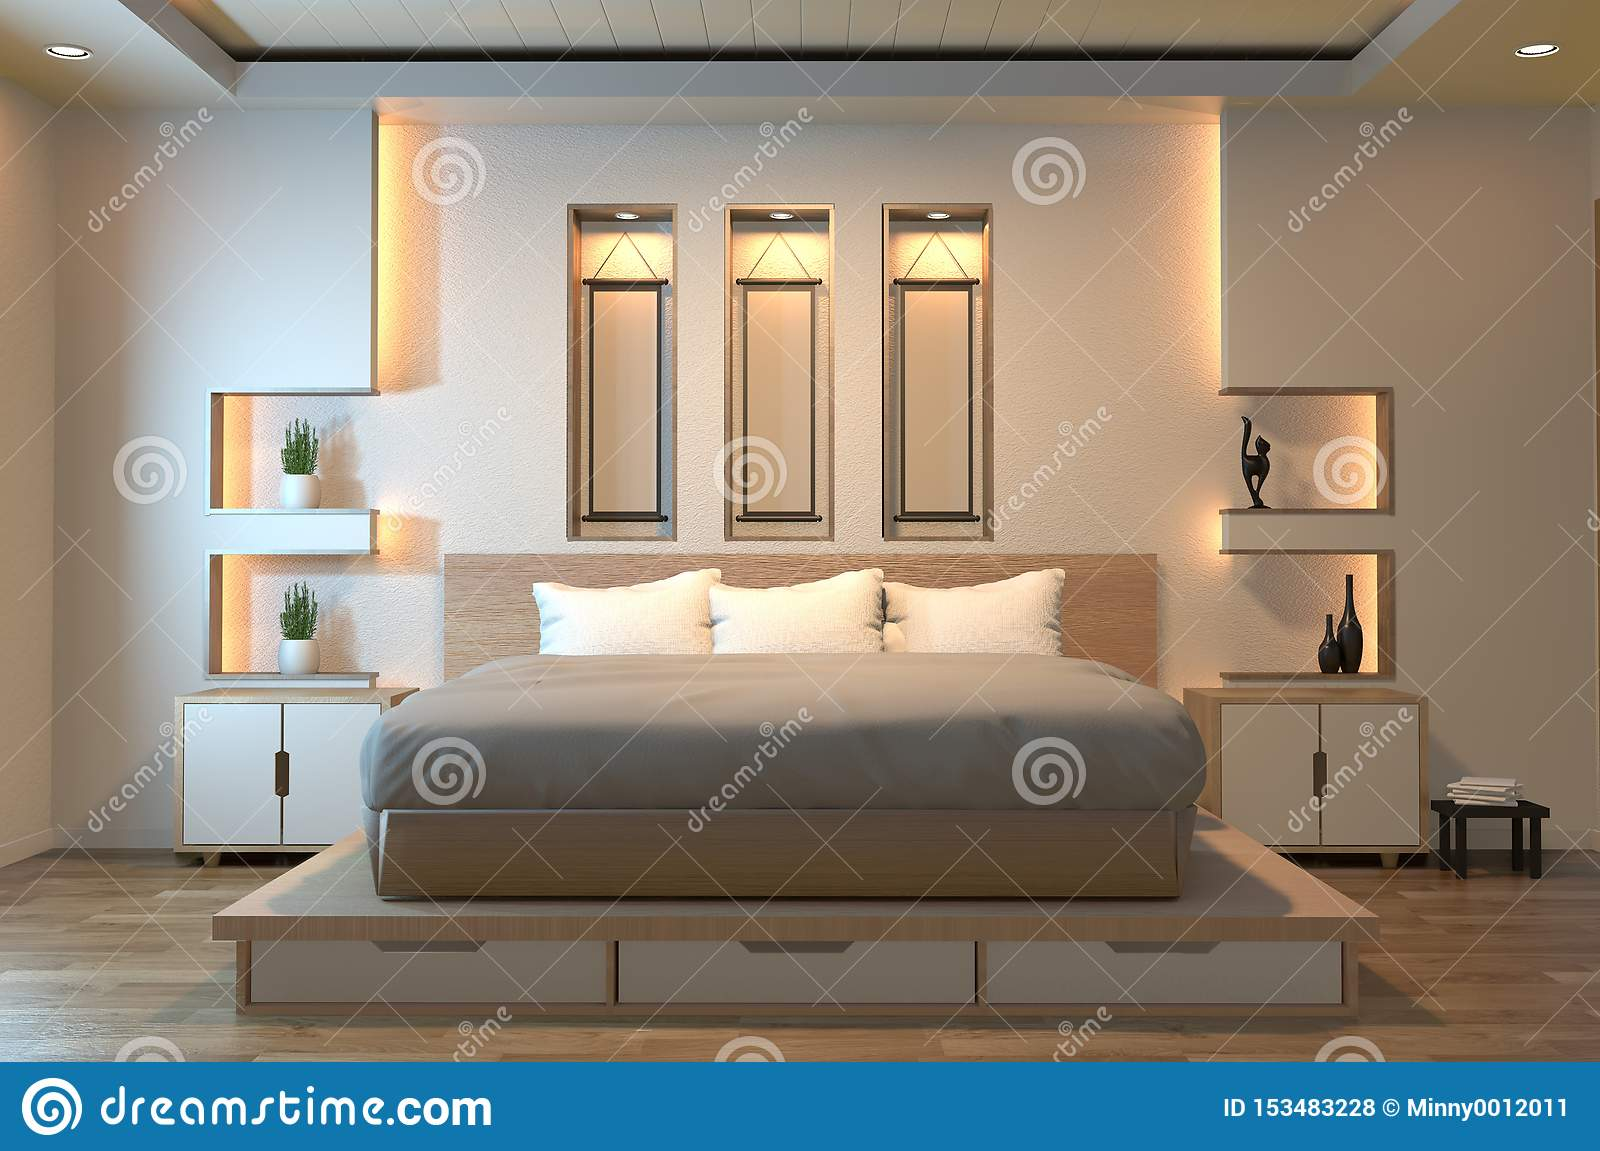 Modern Zen Peaceful Bedroom Japan Style Bedroom With Shelf Wall Design Hidden Light And Decoration Japanese Style 3d Rendering Stock Illustration Illustration Of Living Household 153483228